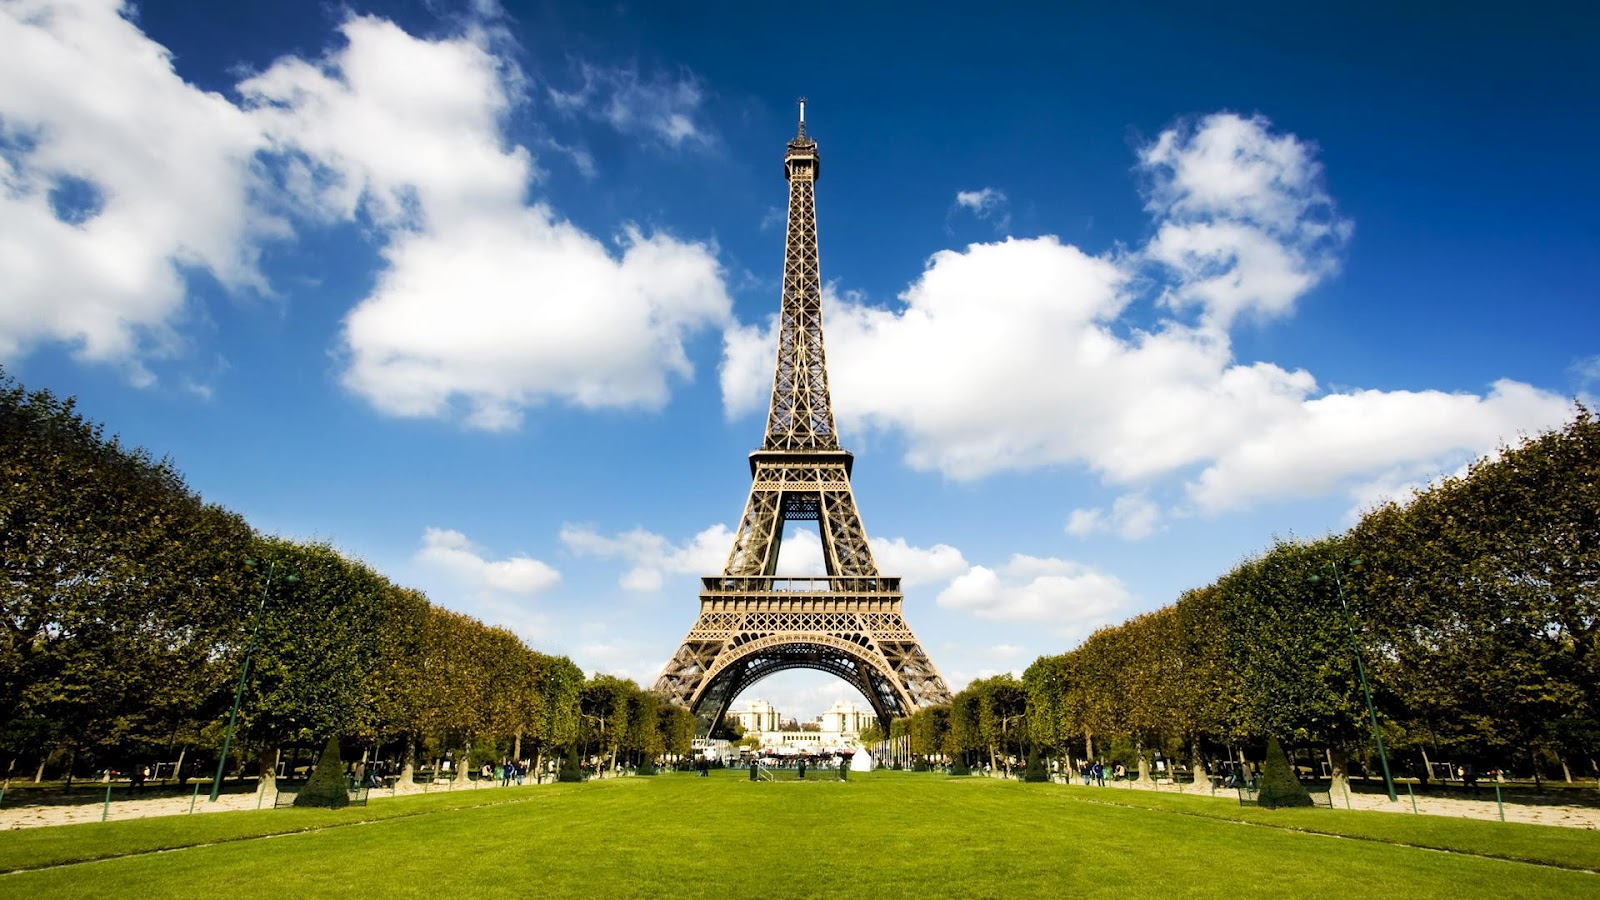 eiffel tower wallpaper - photo #35